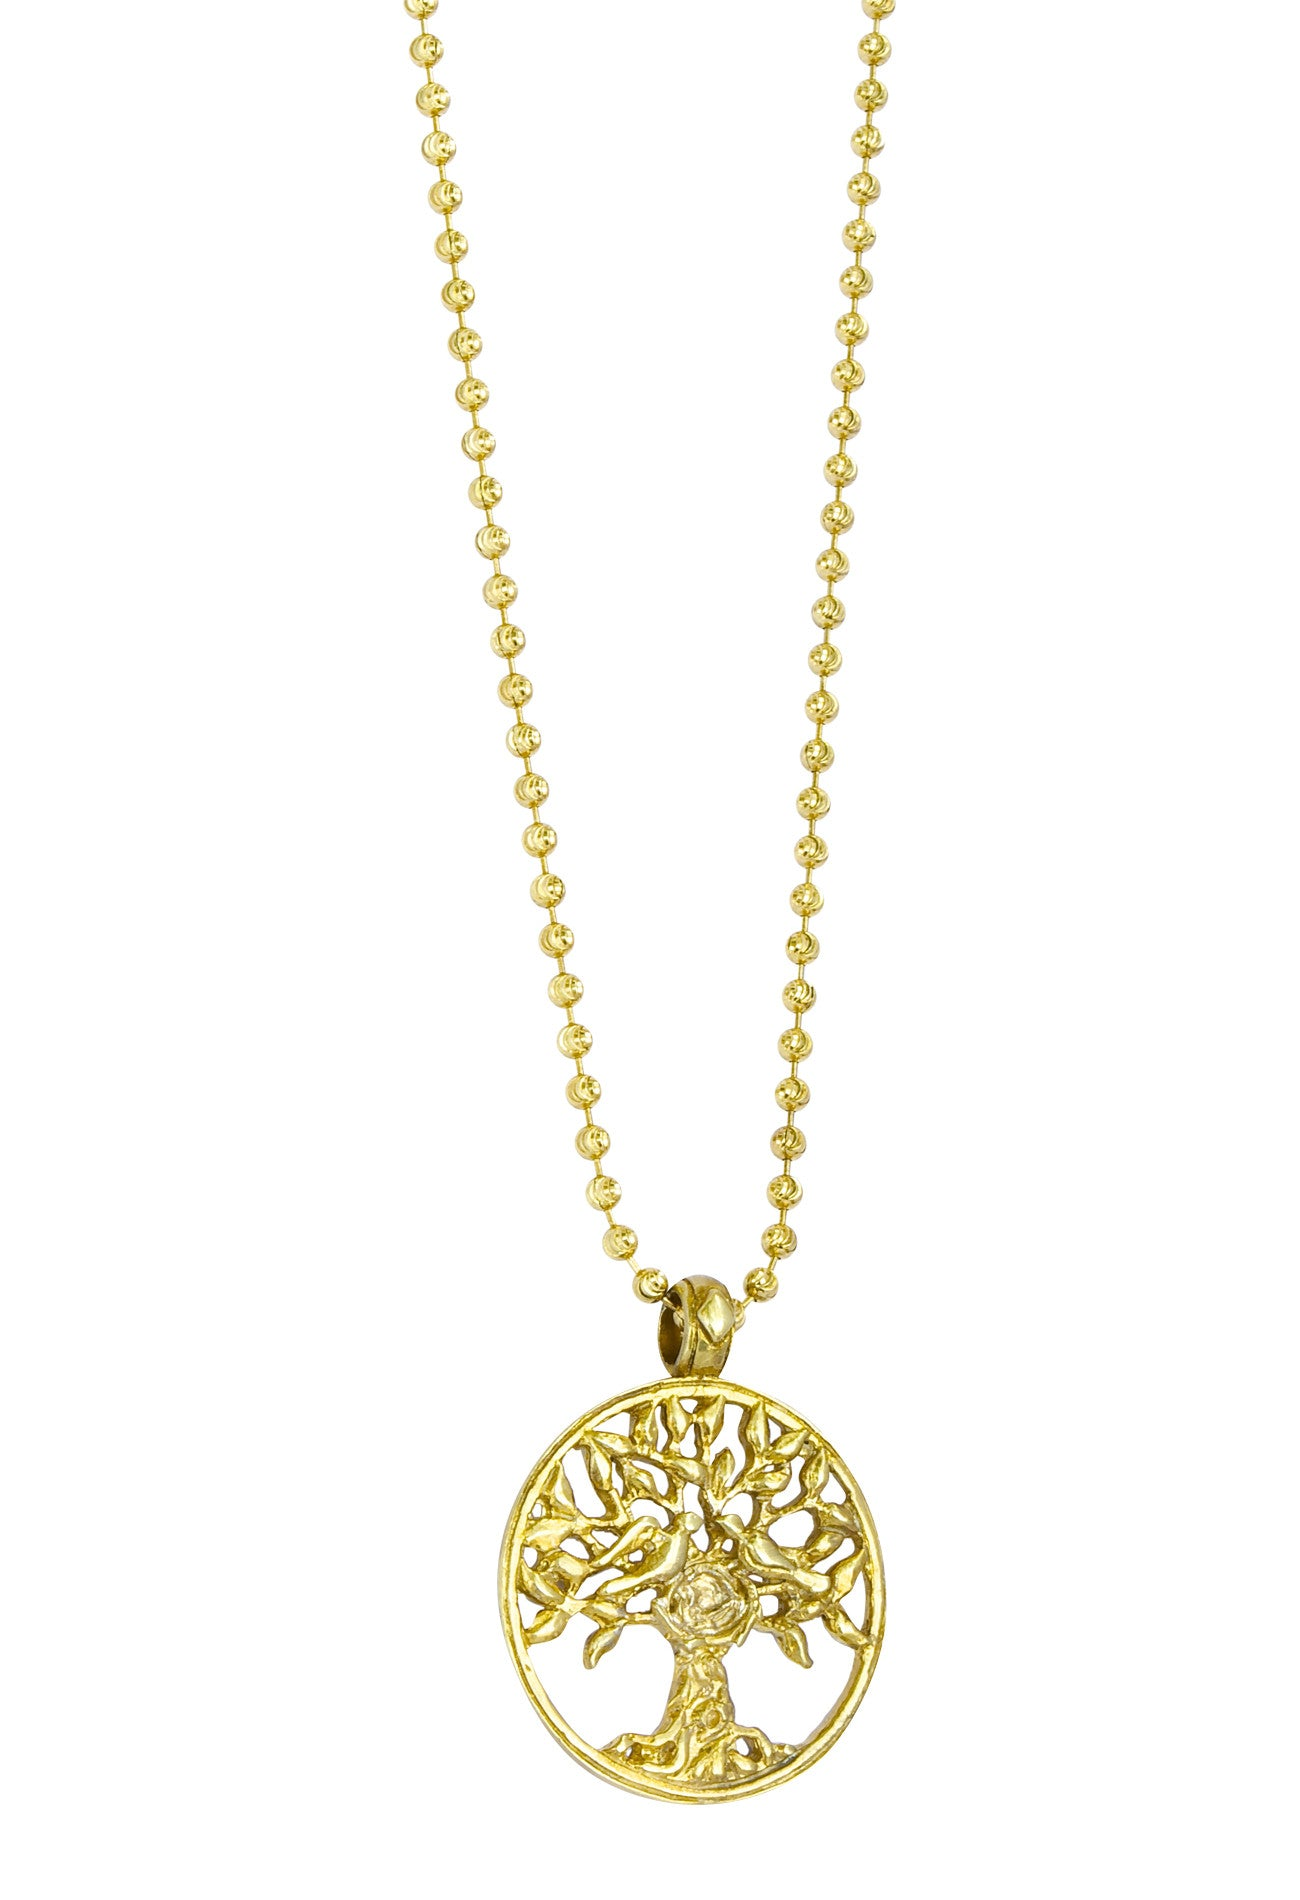 Medium Gold Tree Of Life Chain Necklace